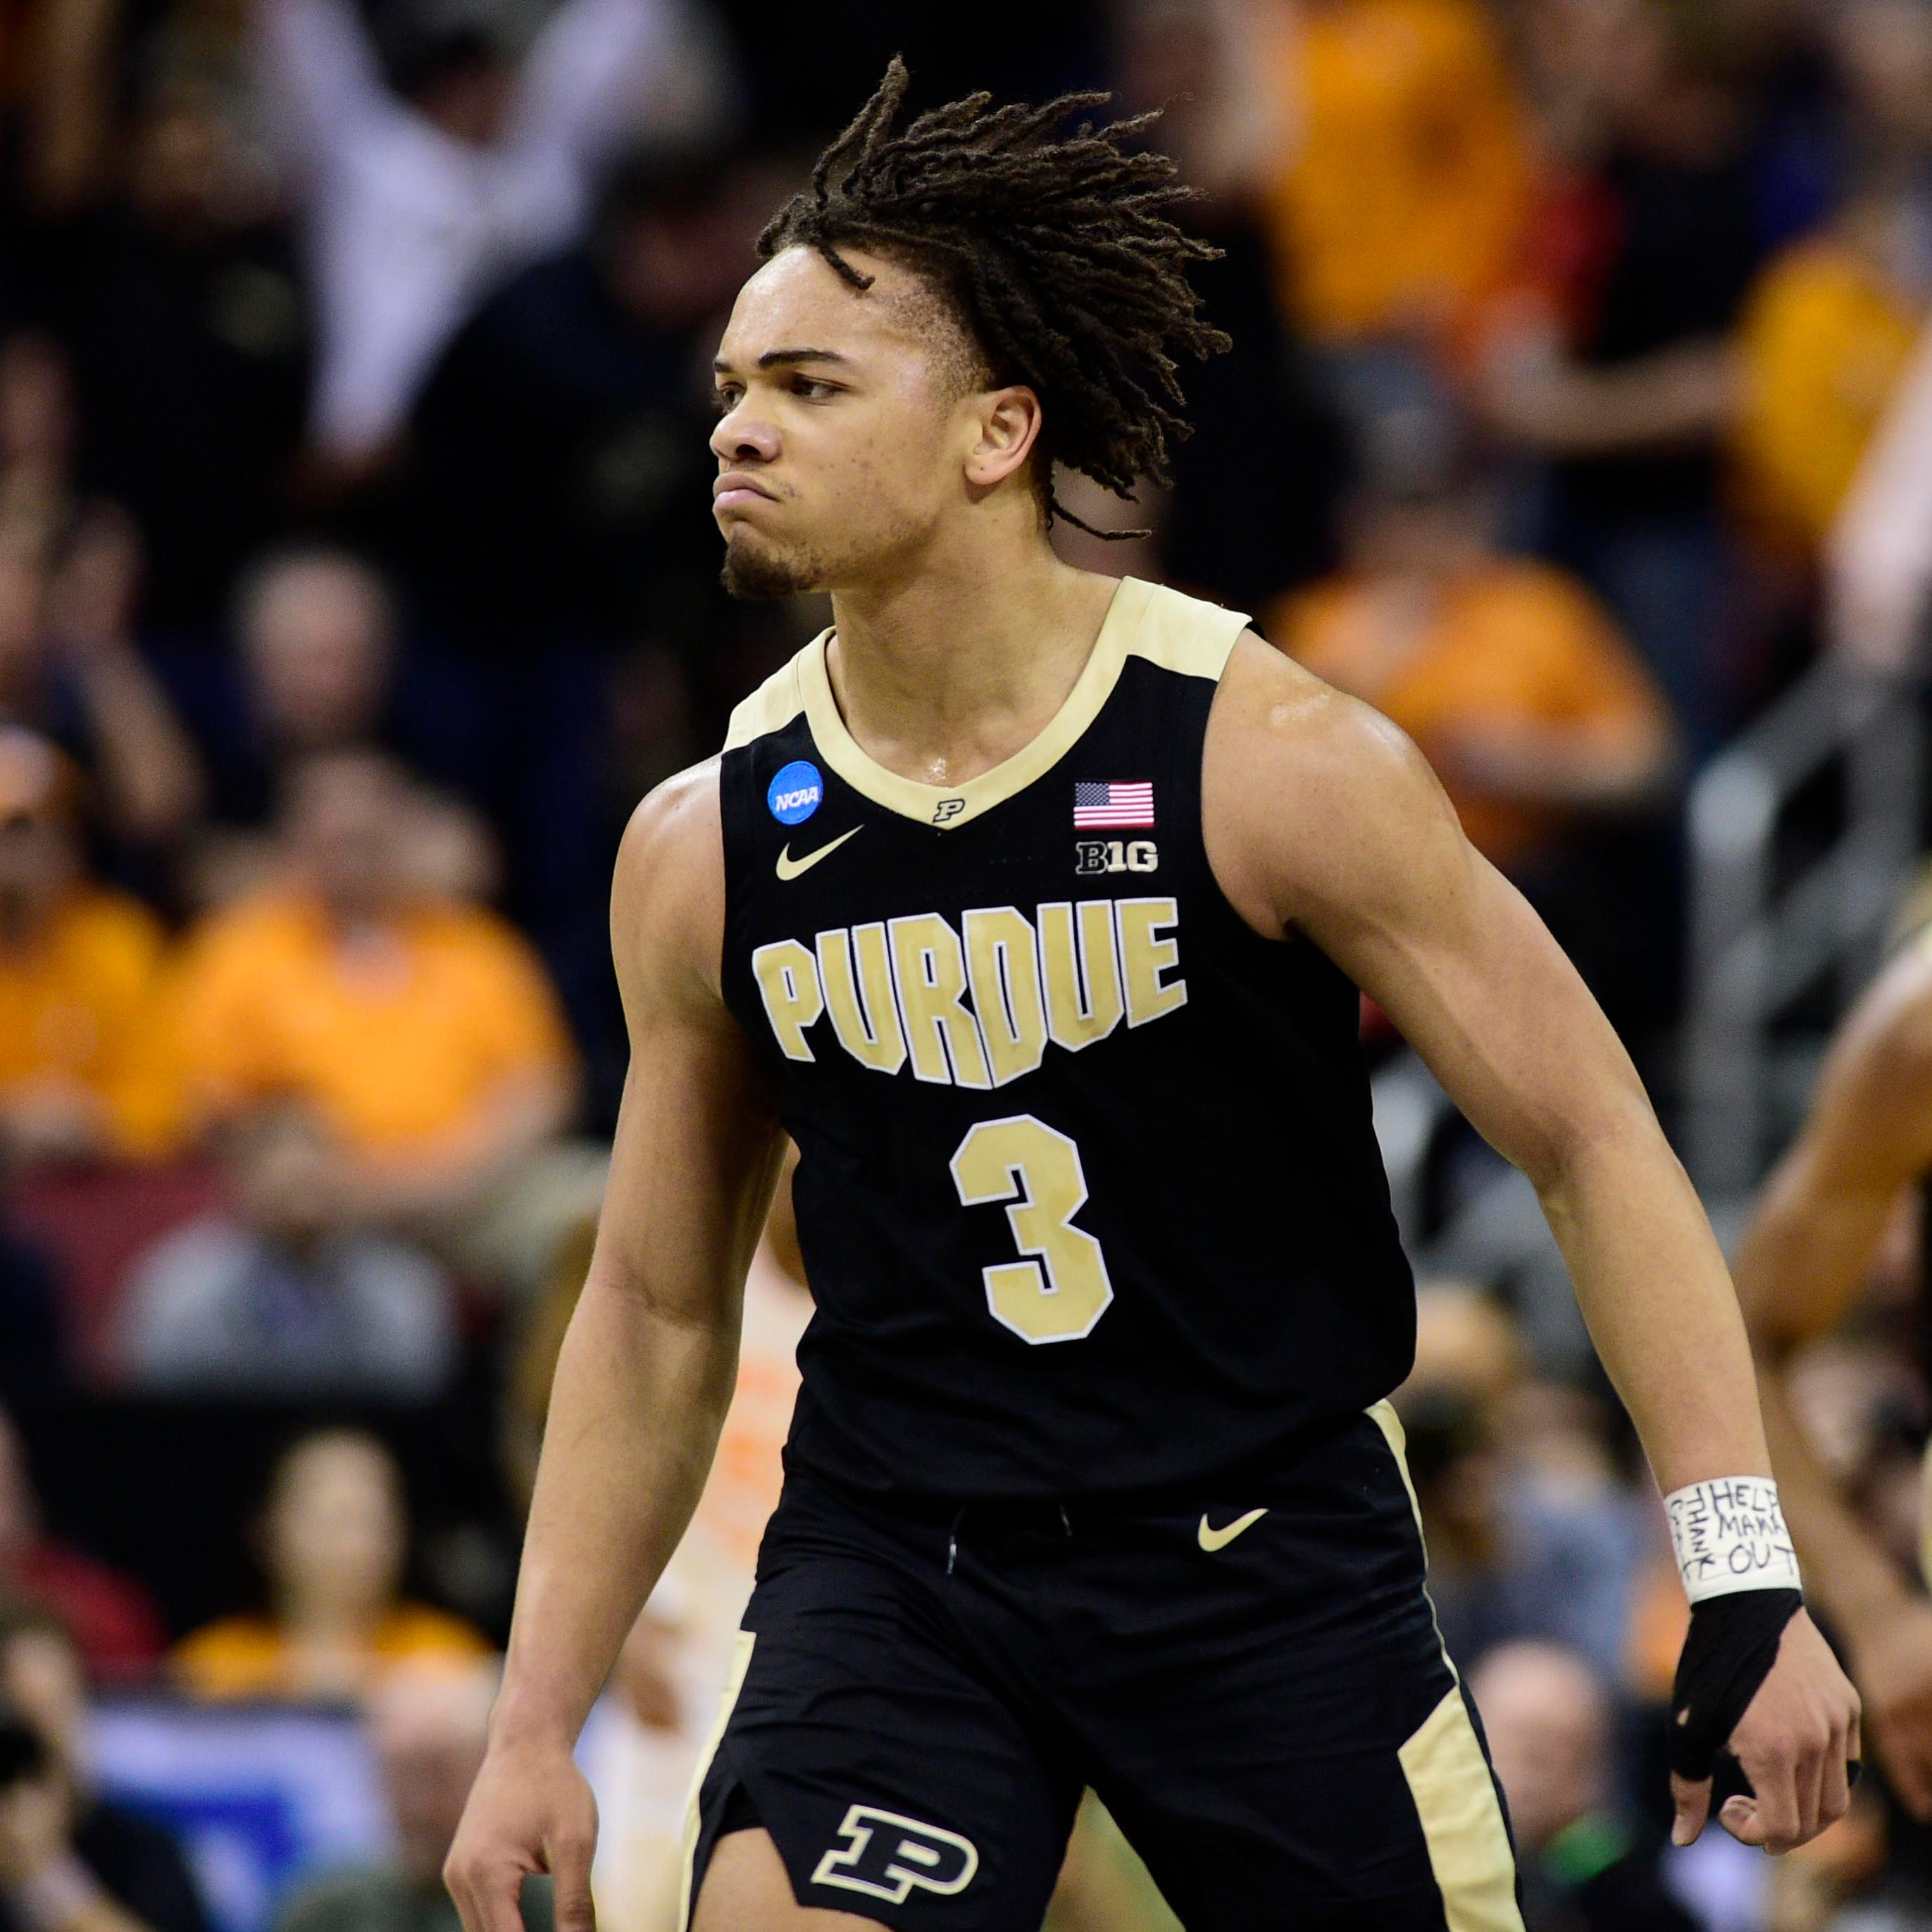 Purdue basketball's Carsen Edwards preparing for undetermined NBA role